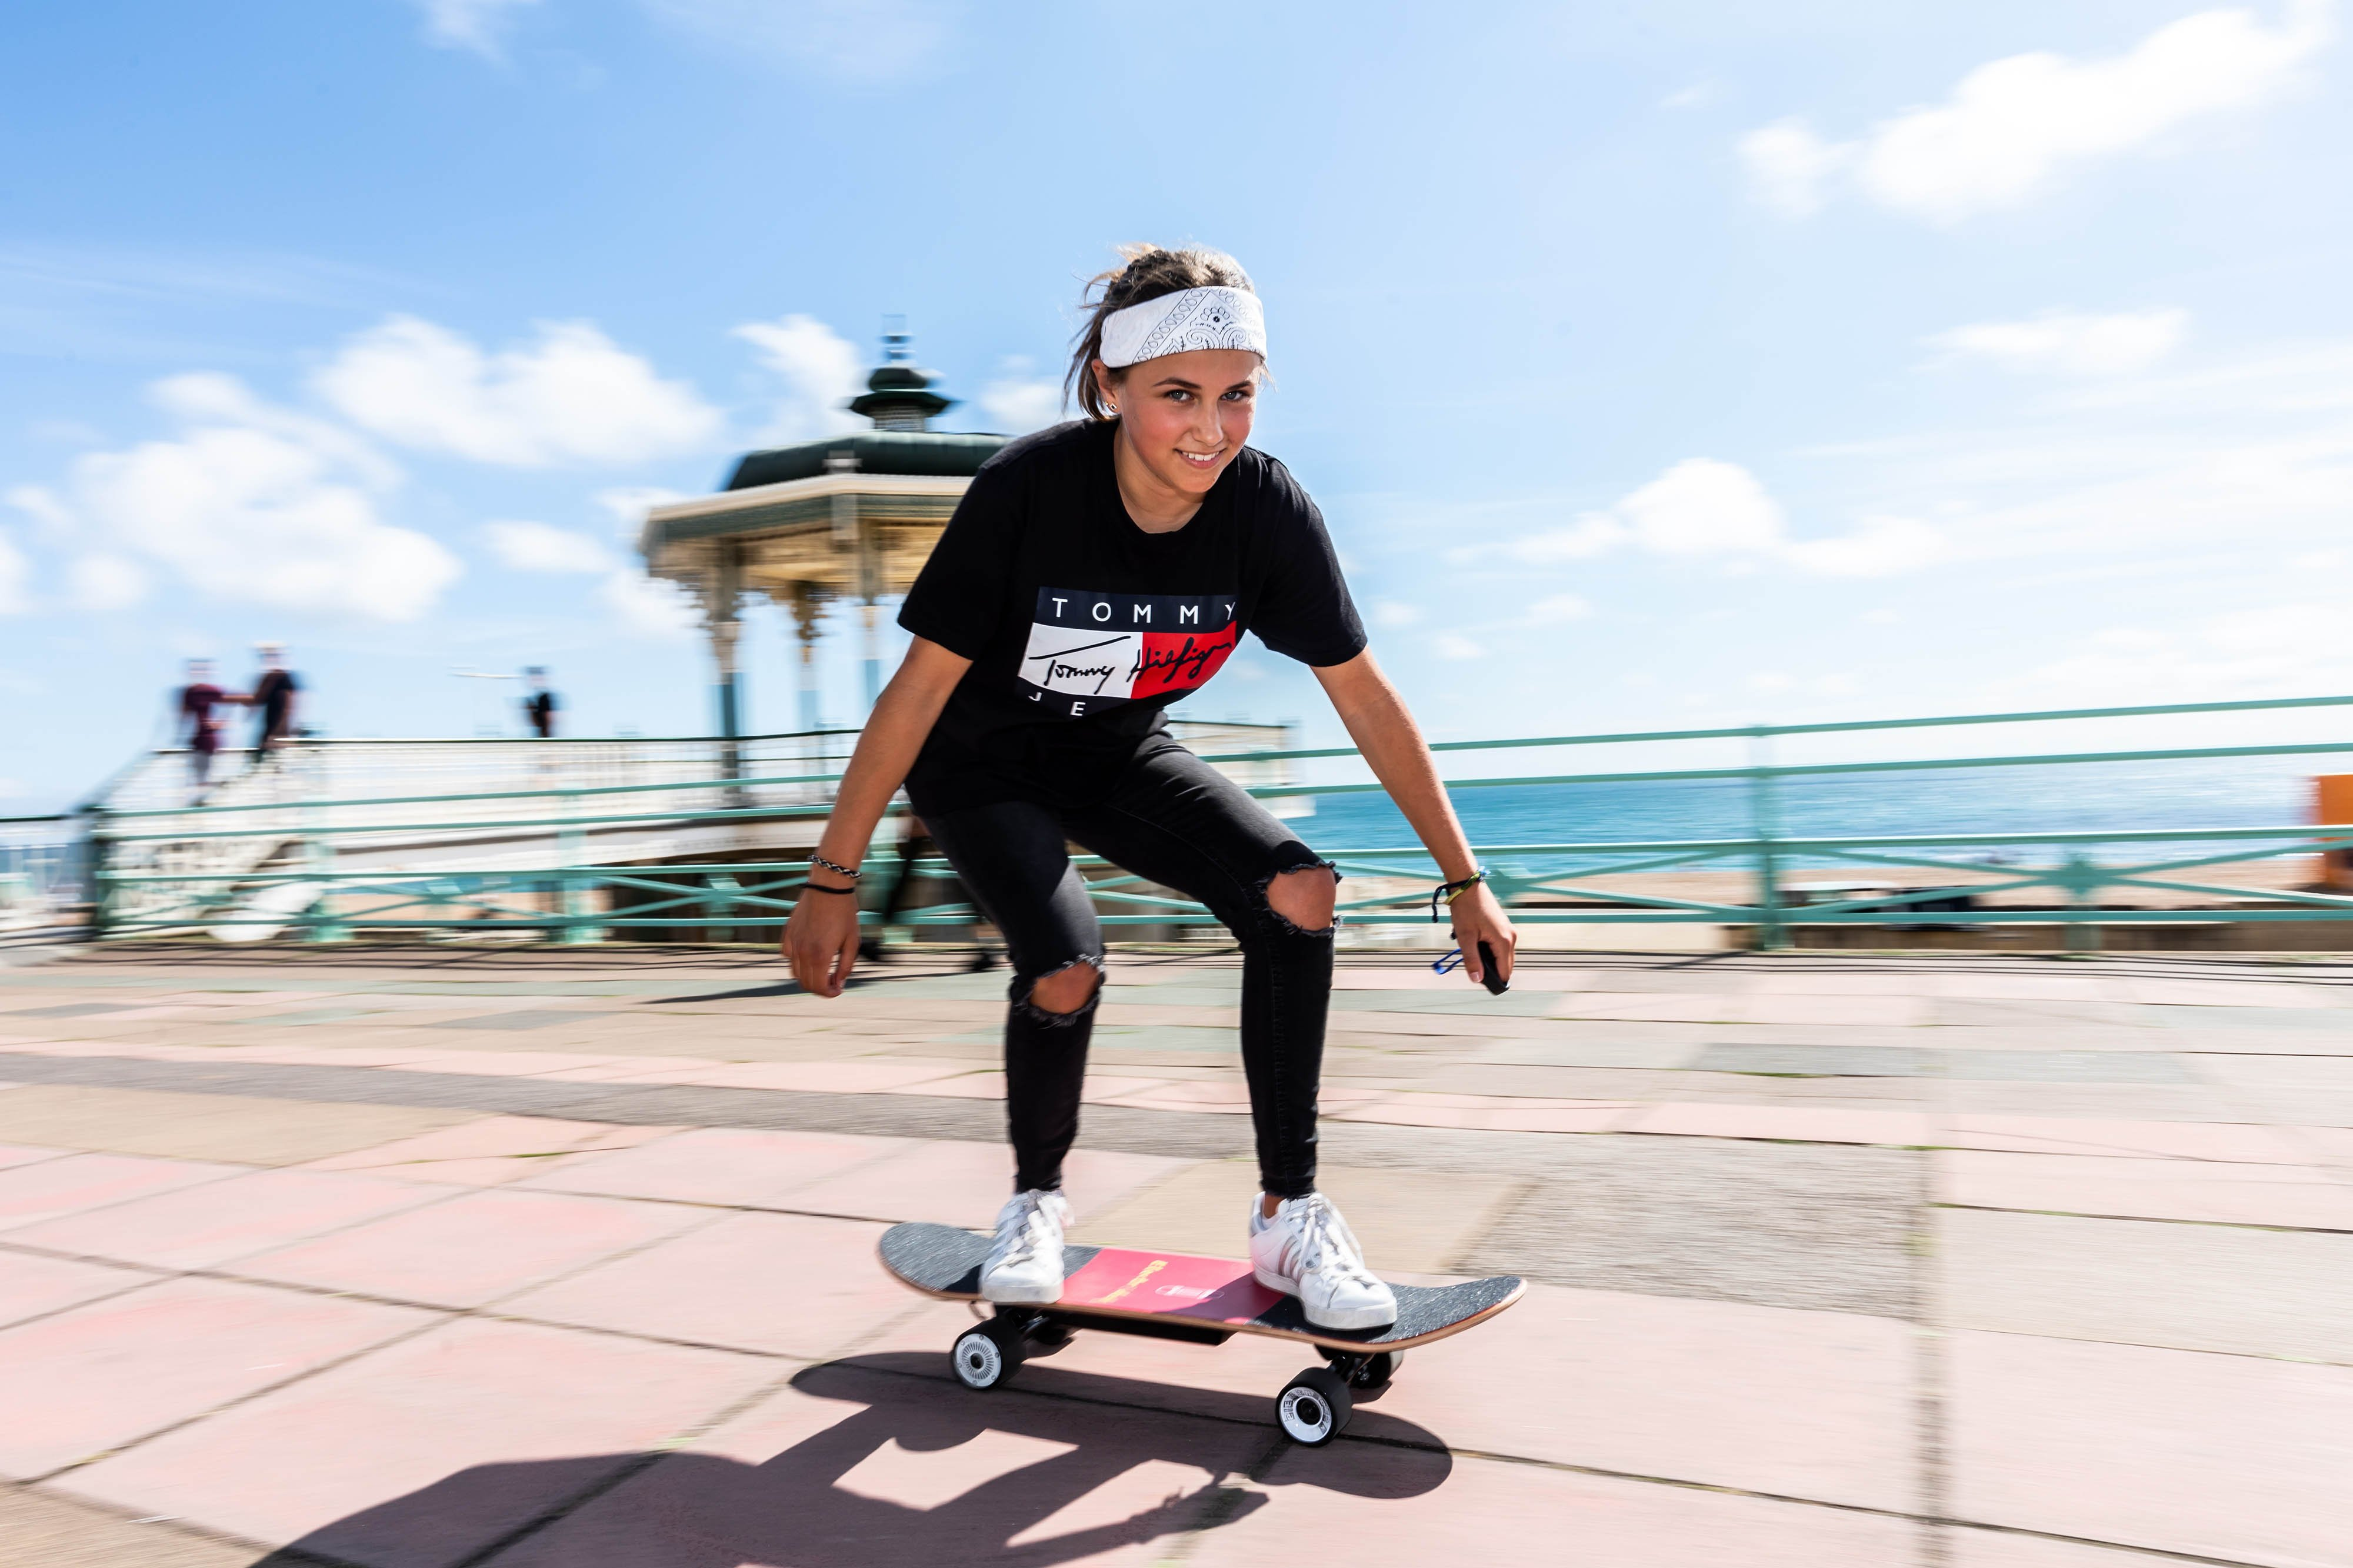 Charlotte Geary, 13, wins award for invention which could reshape skateboarding